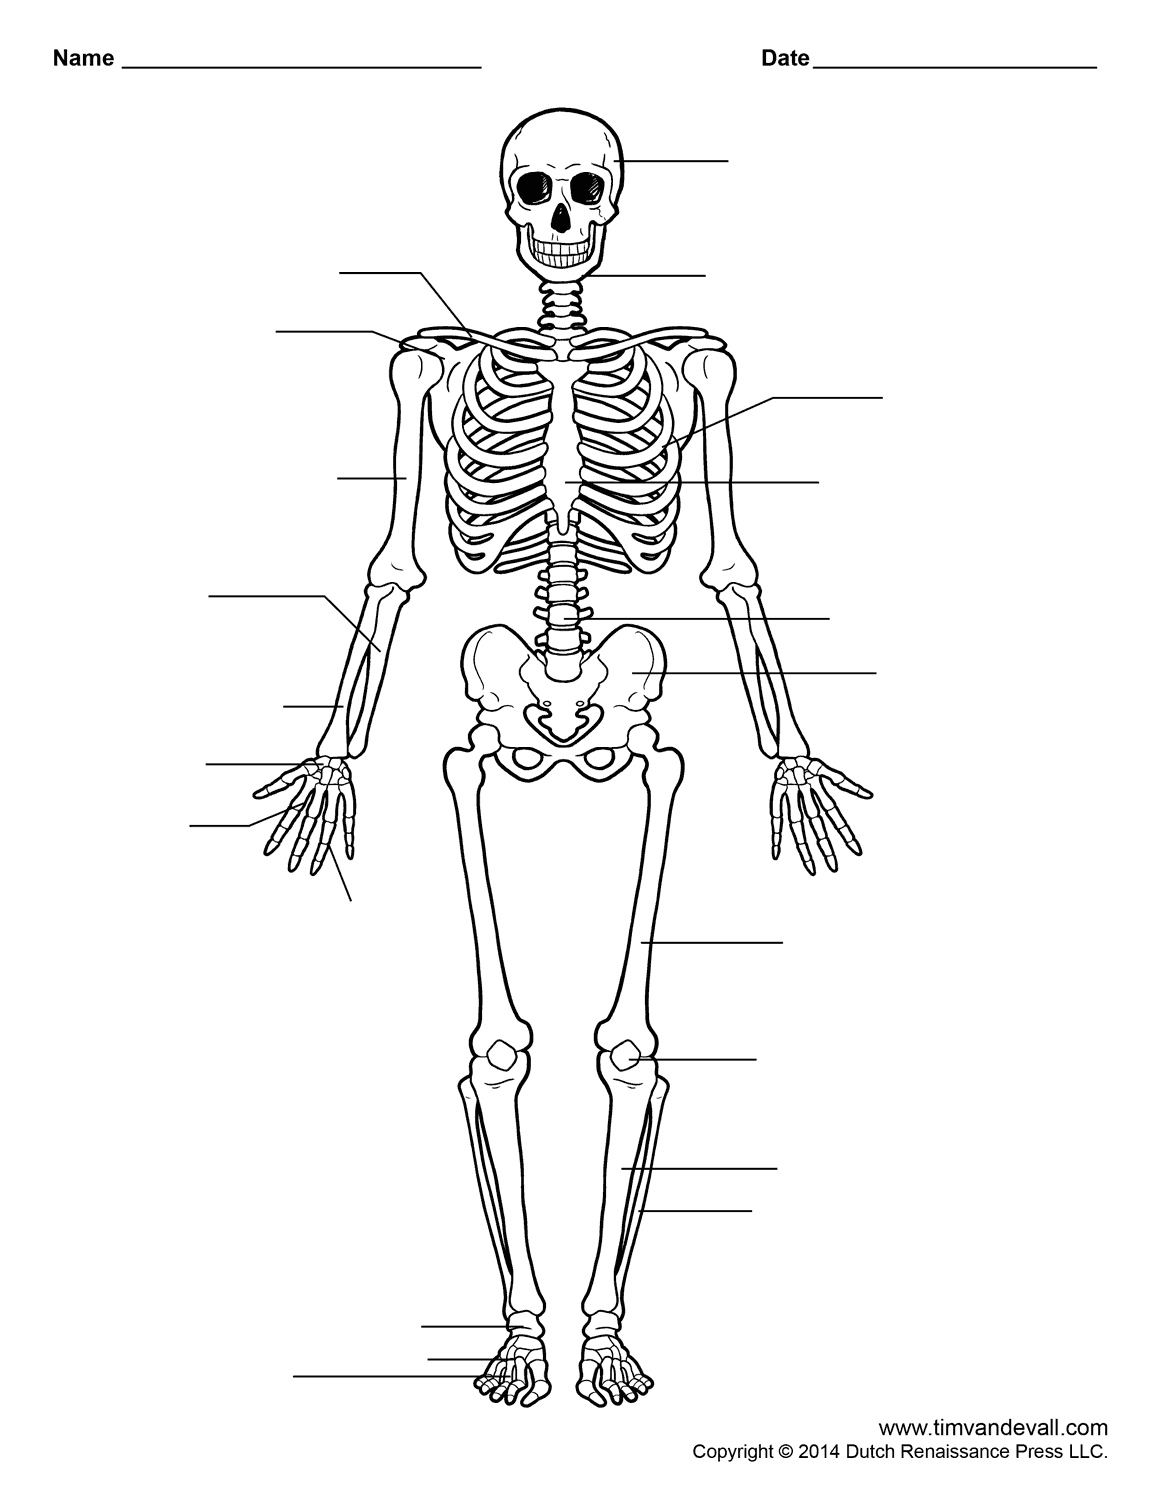 Human Skeleton Worksheet | Homeschool-Science | Human Skeleton - Free Printable Human Anatomy Worksheets